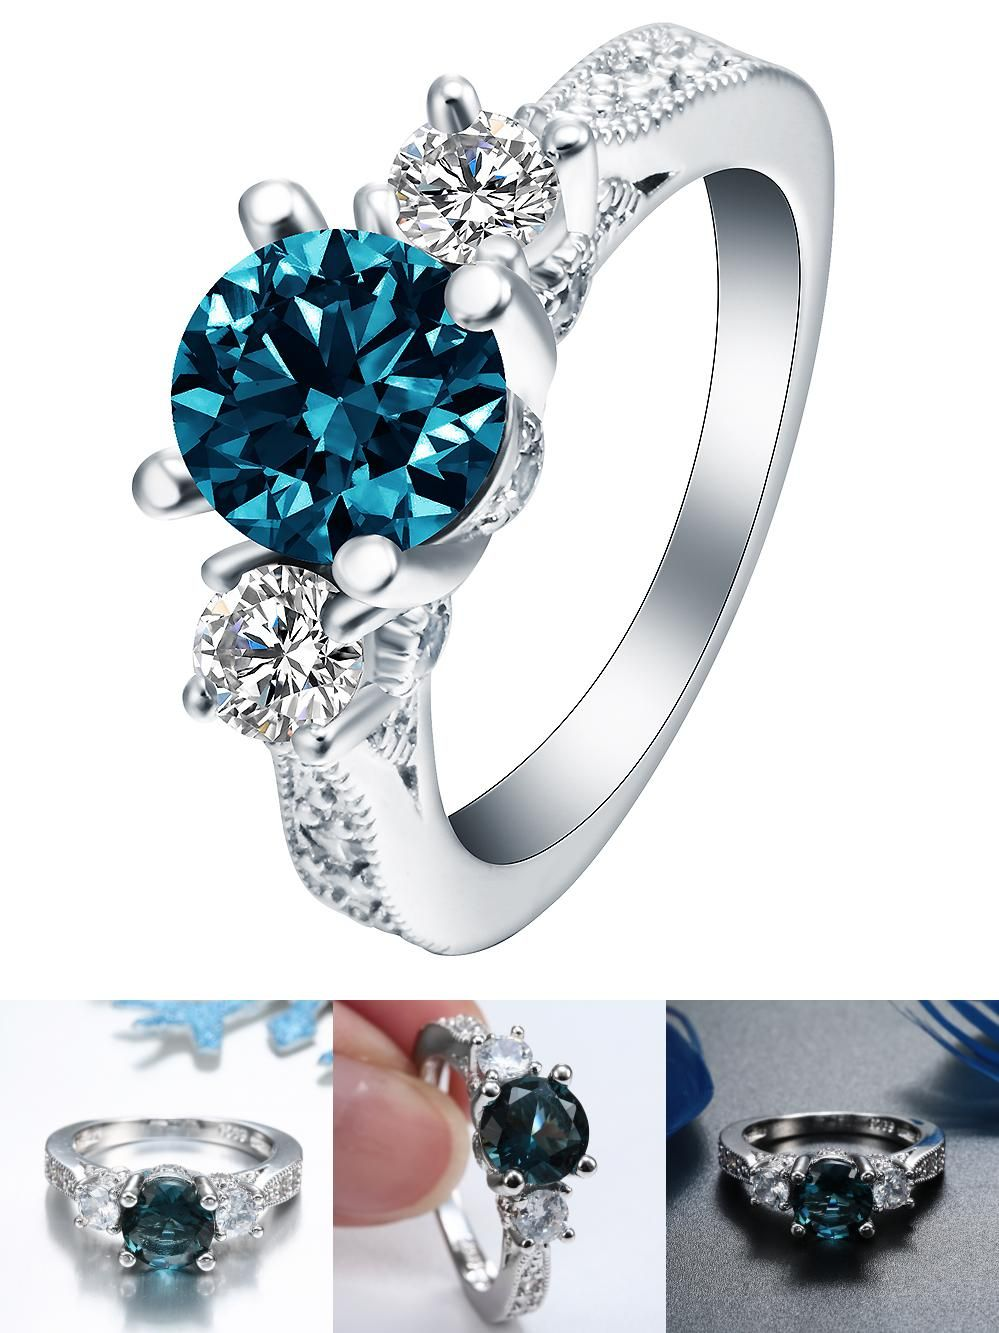 Visit To Buy Silver Plated Blue Stone Engagement Wedding Rings For Women Vintage Ring: Wedding Ring Art Deco Adver At Reisefeber.org